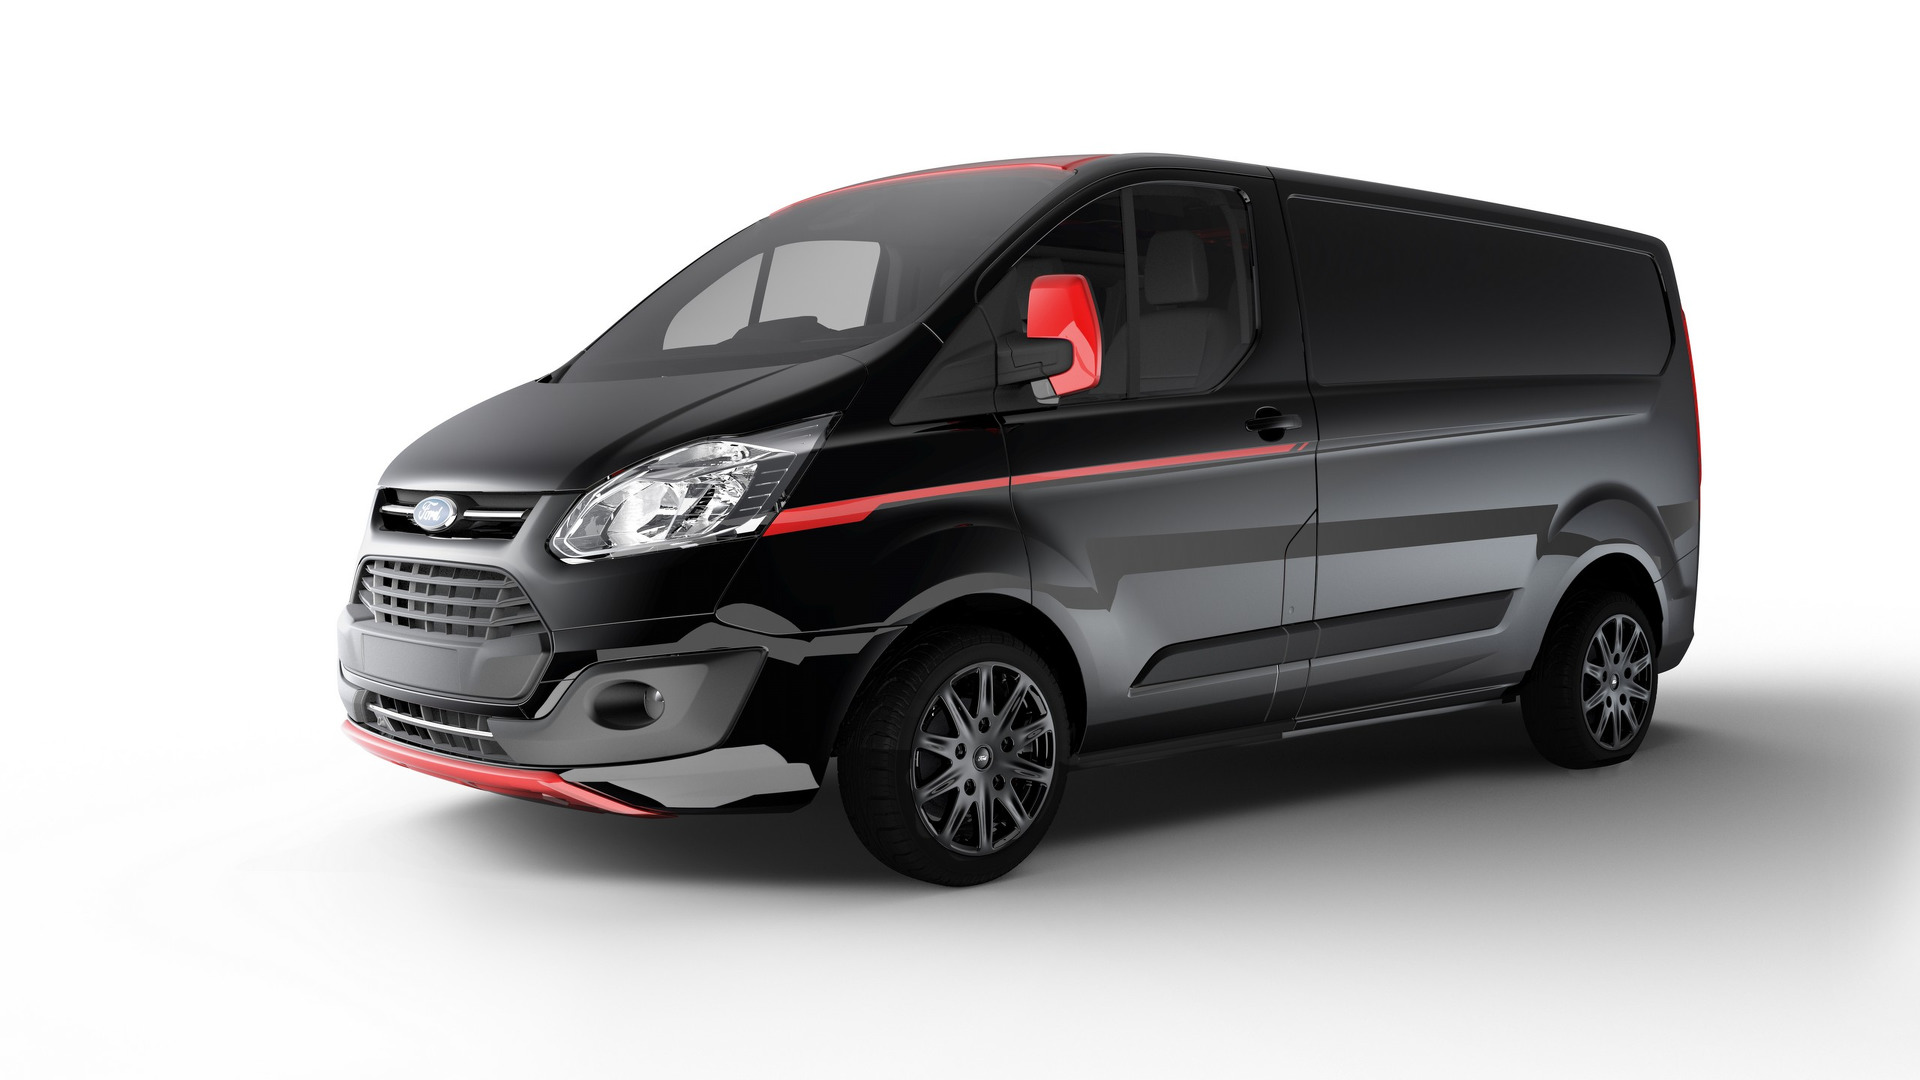 vans bulletproof van the connect vehicles transit group armored ford